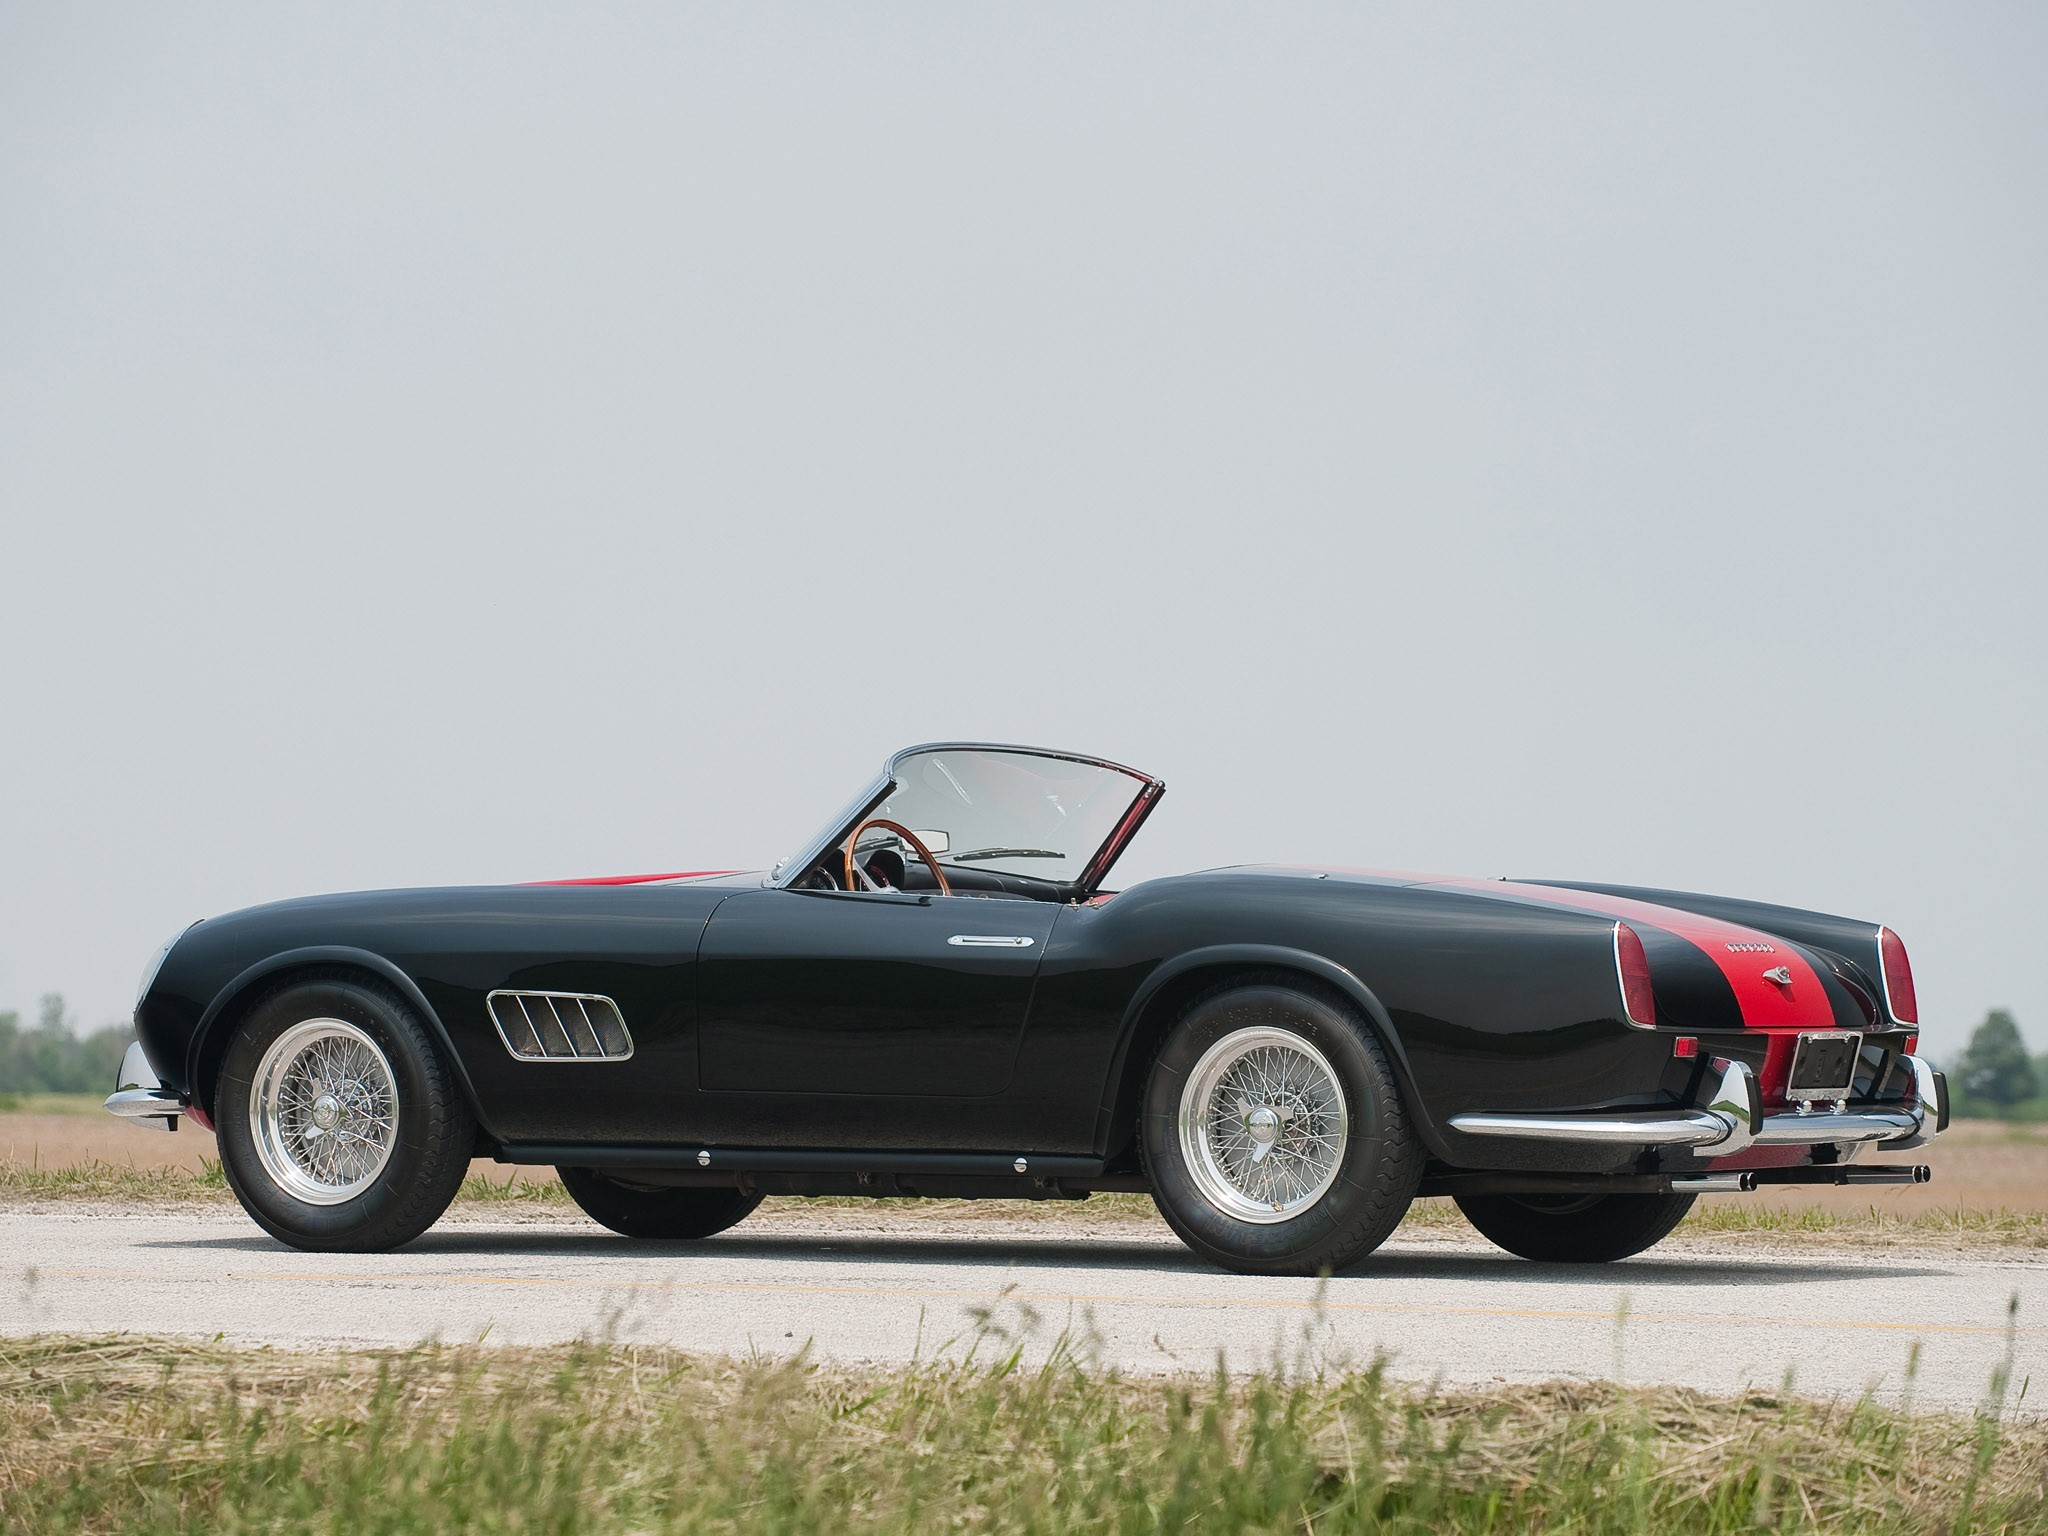 Ferrari 250 GT LWB California Spyder Dual Color 1957